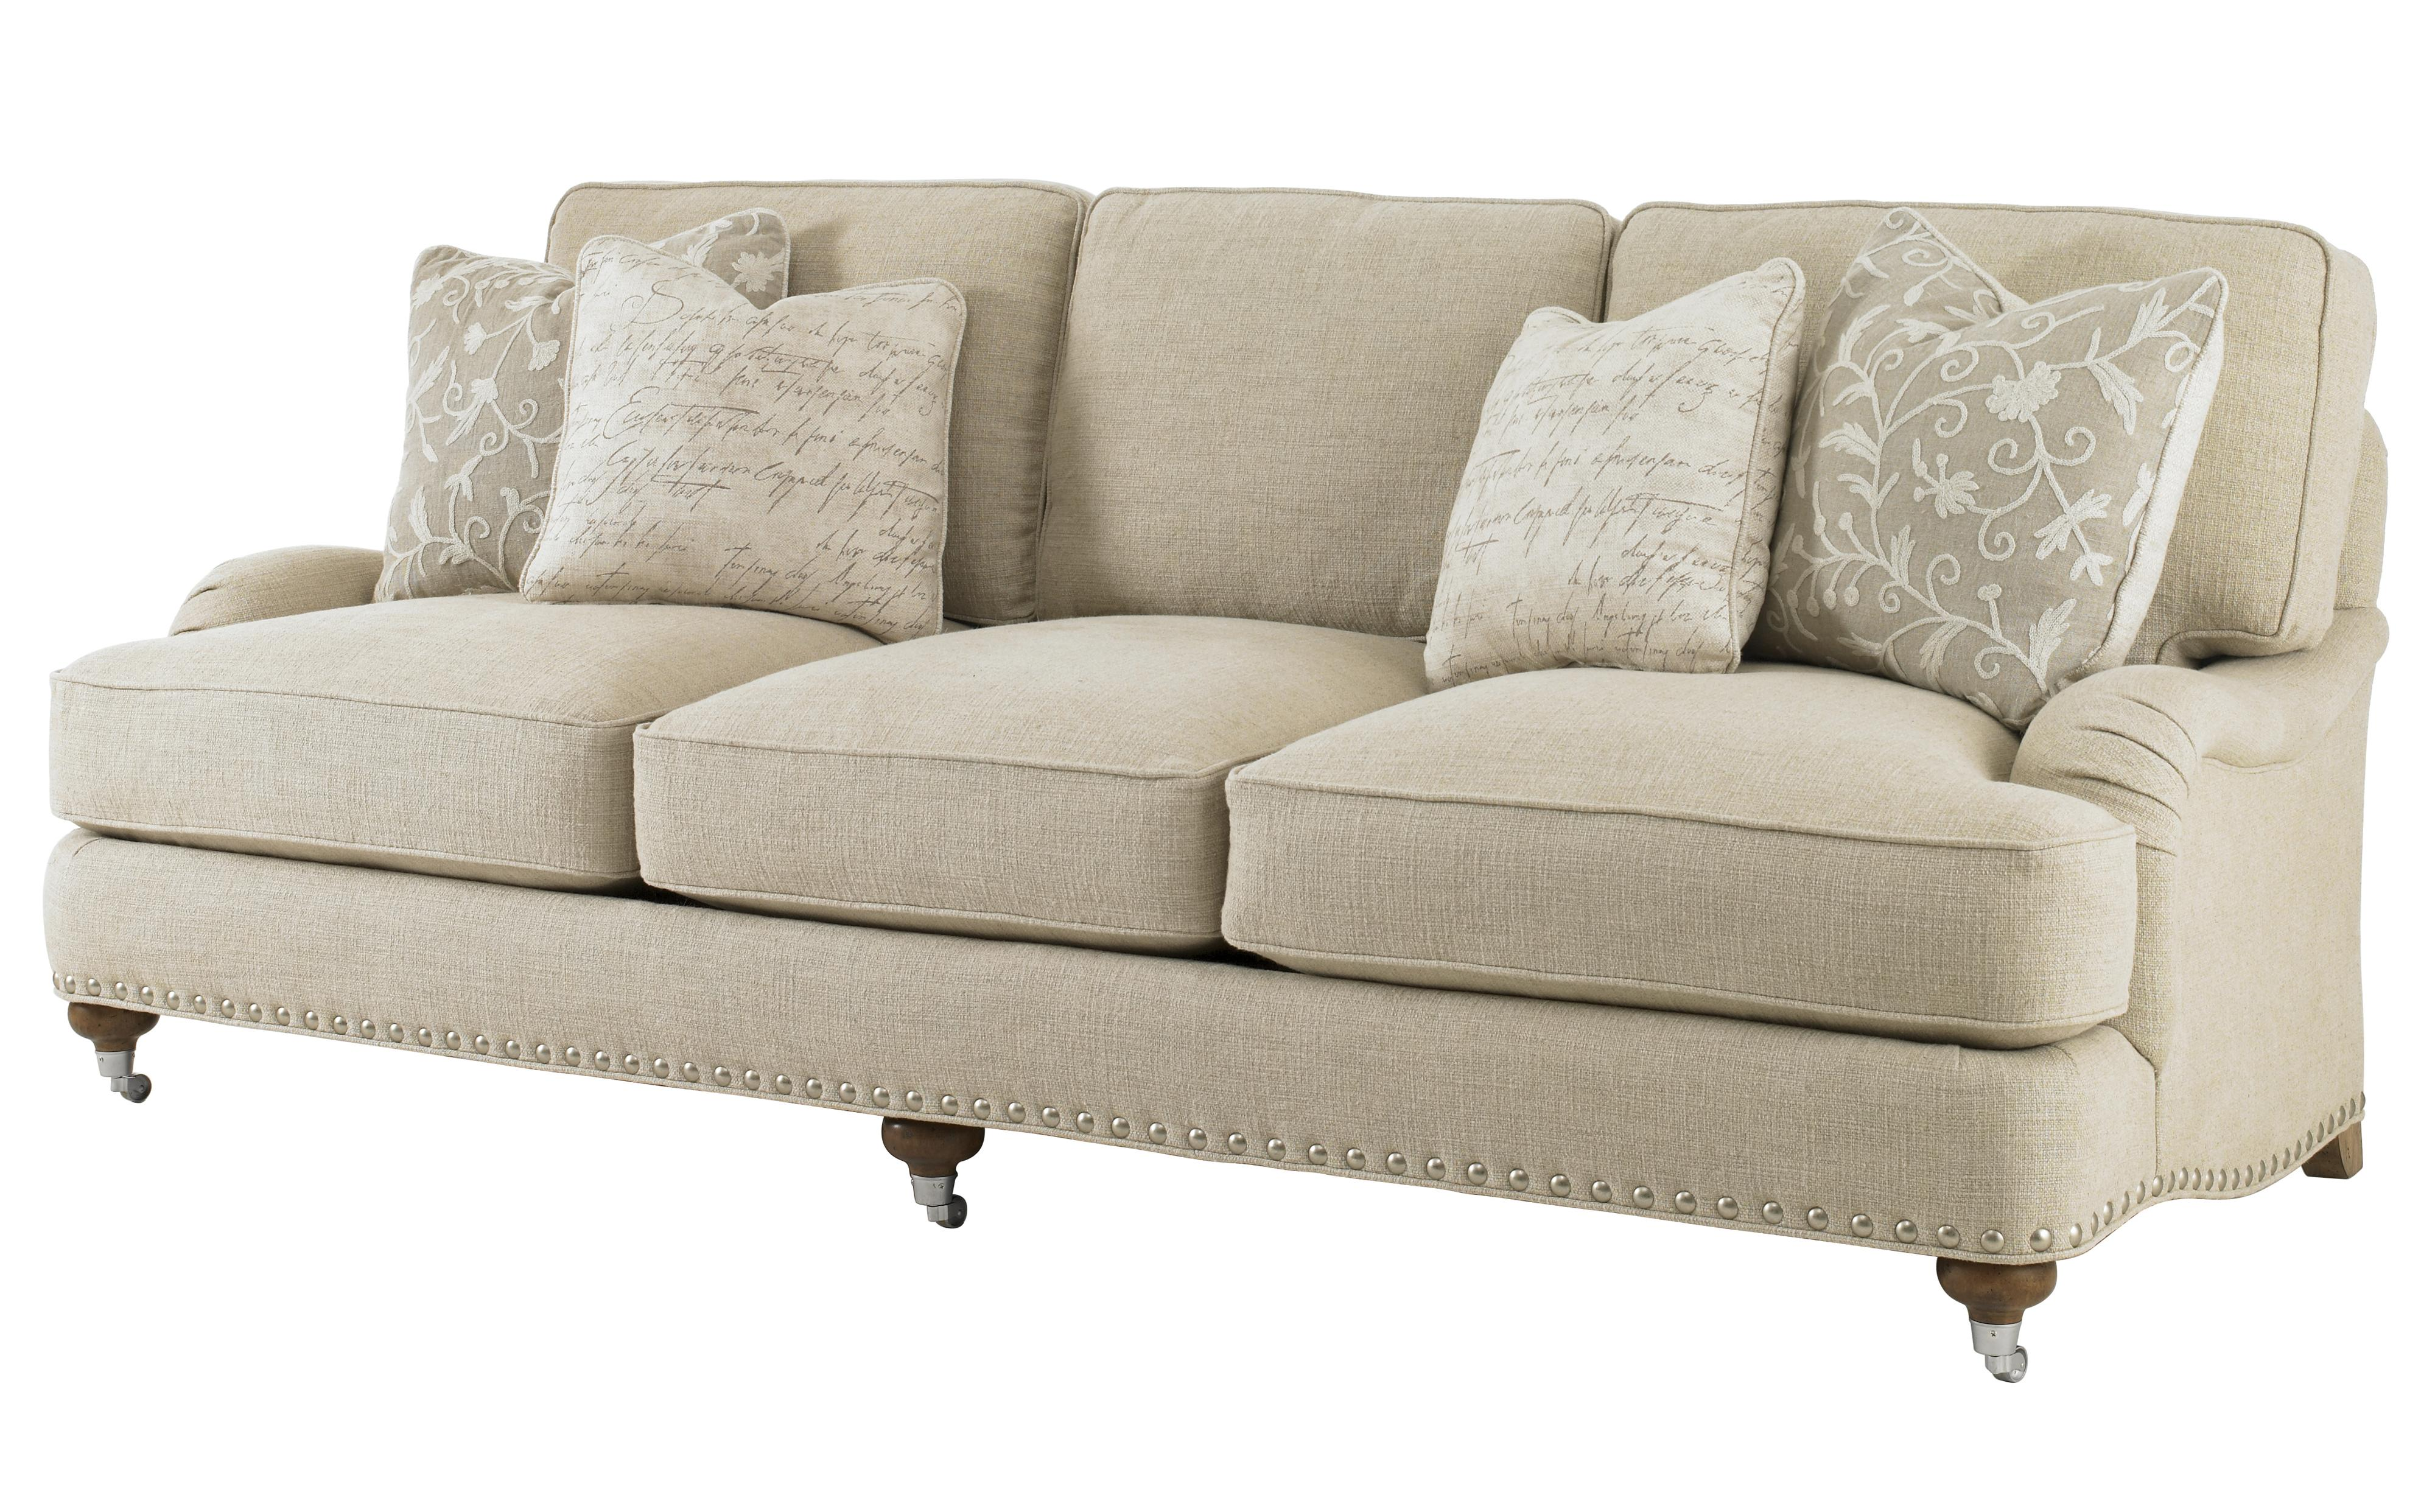 Twilight Bay Carley Sofa by Lexington at Baer's Furniture